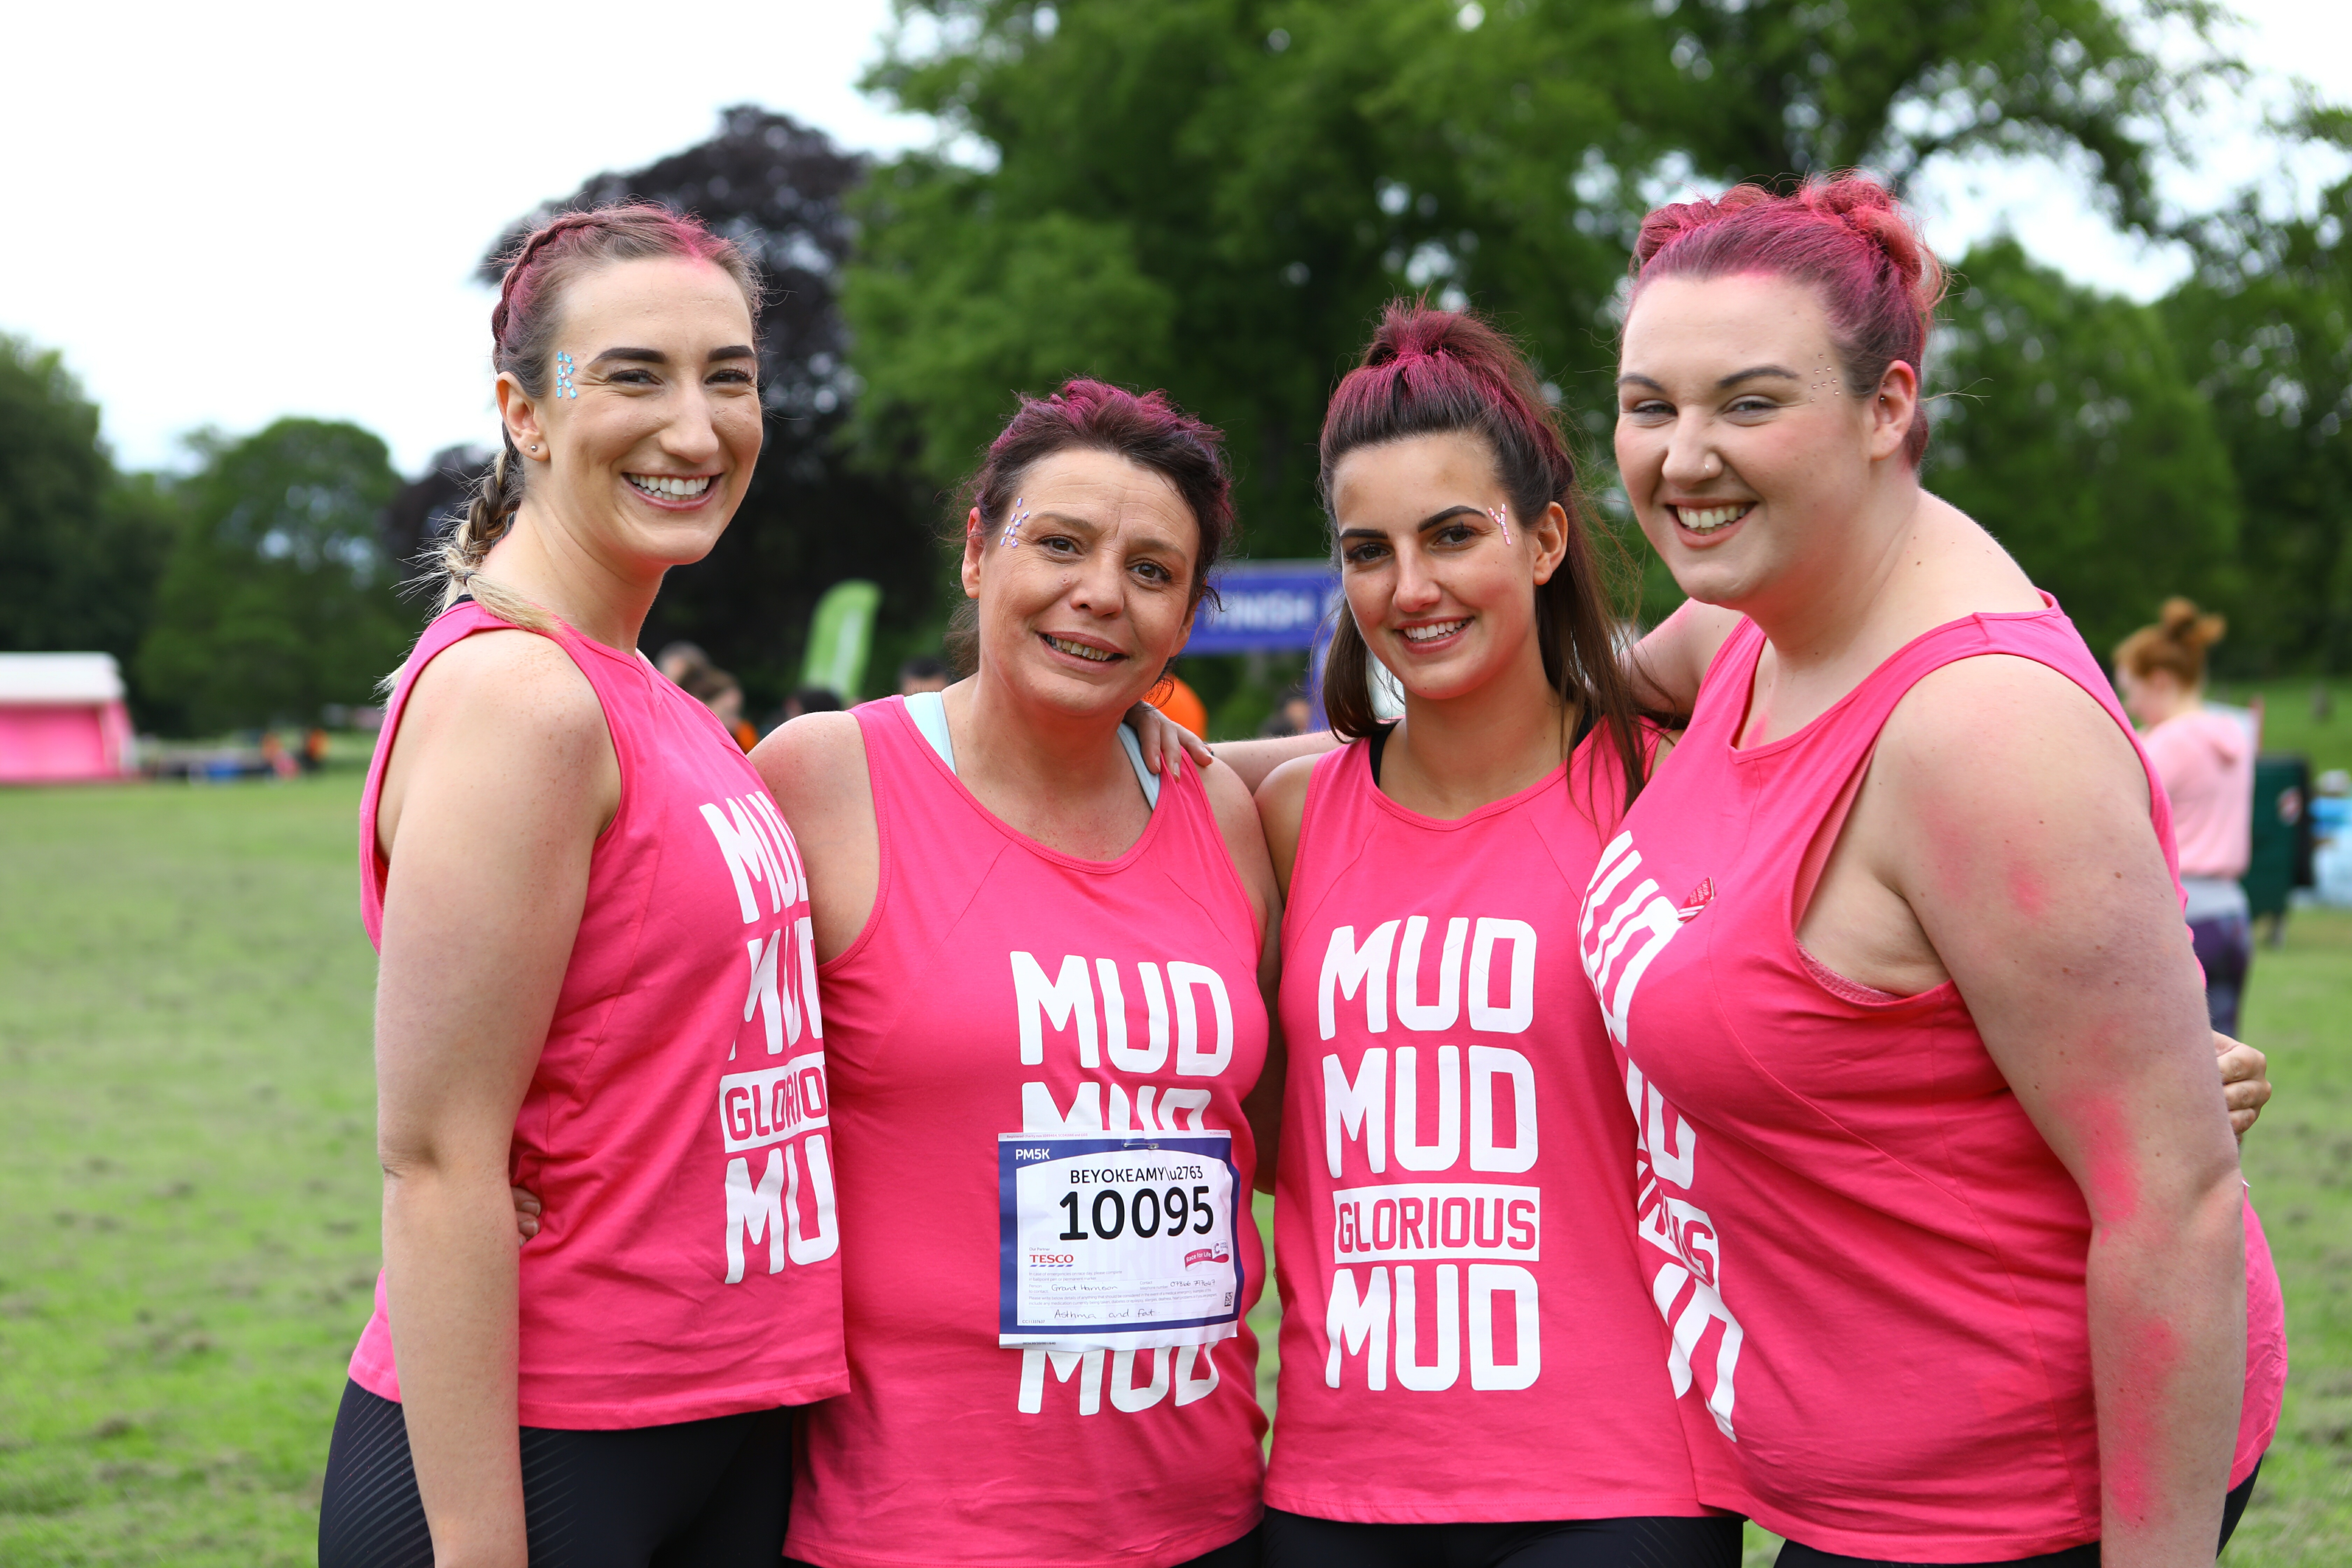 This year's event has been postponed. Pictured is from left: Rebecca Hardie, Kerry Lowe, Yolanda Hodgson and Amy Brown, before the Pretty Muddy 5K last June.